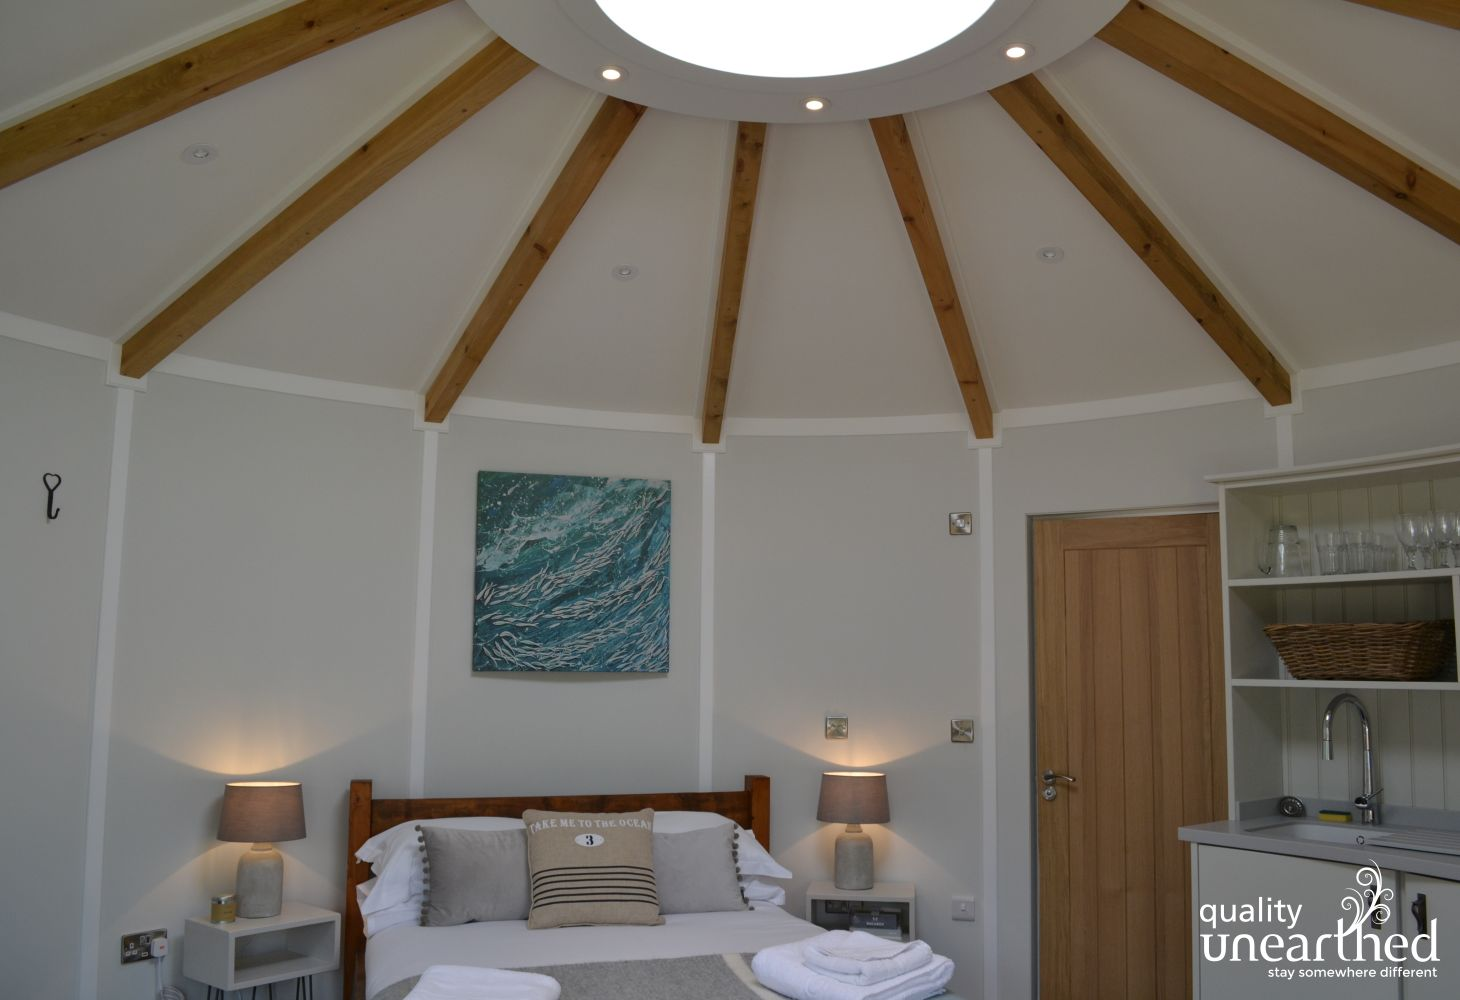 The Ocean Room in Cornwall